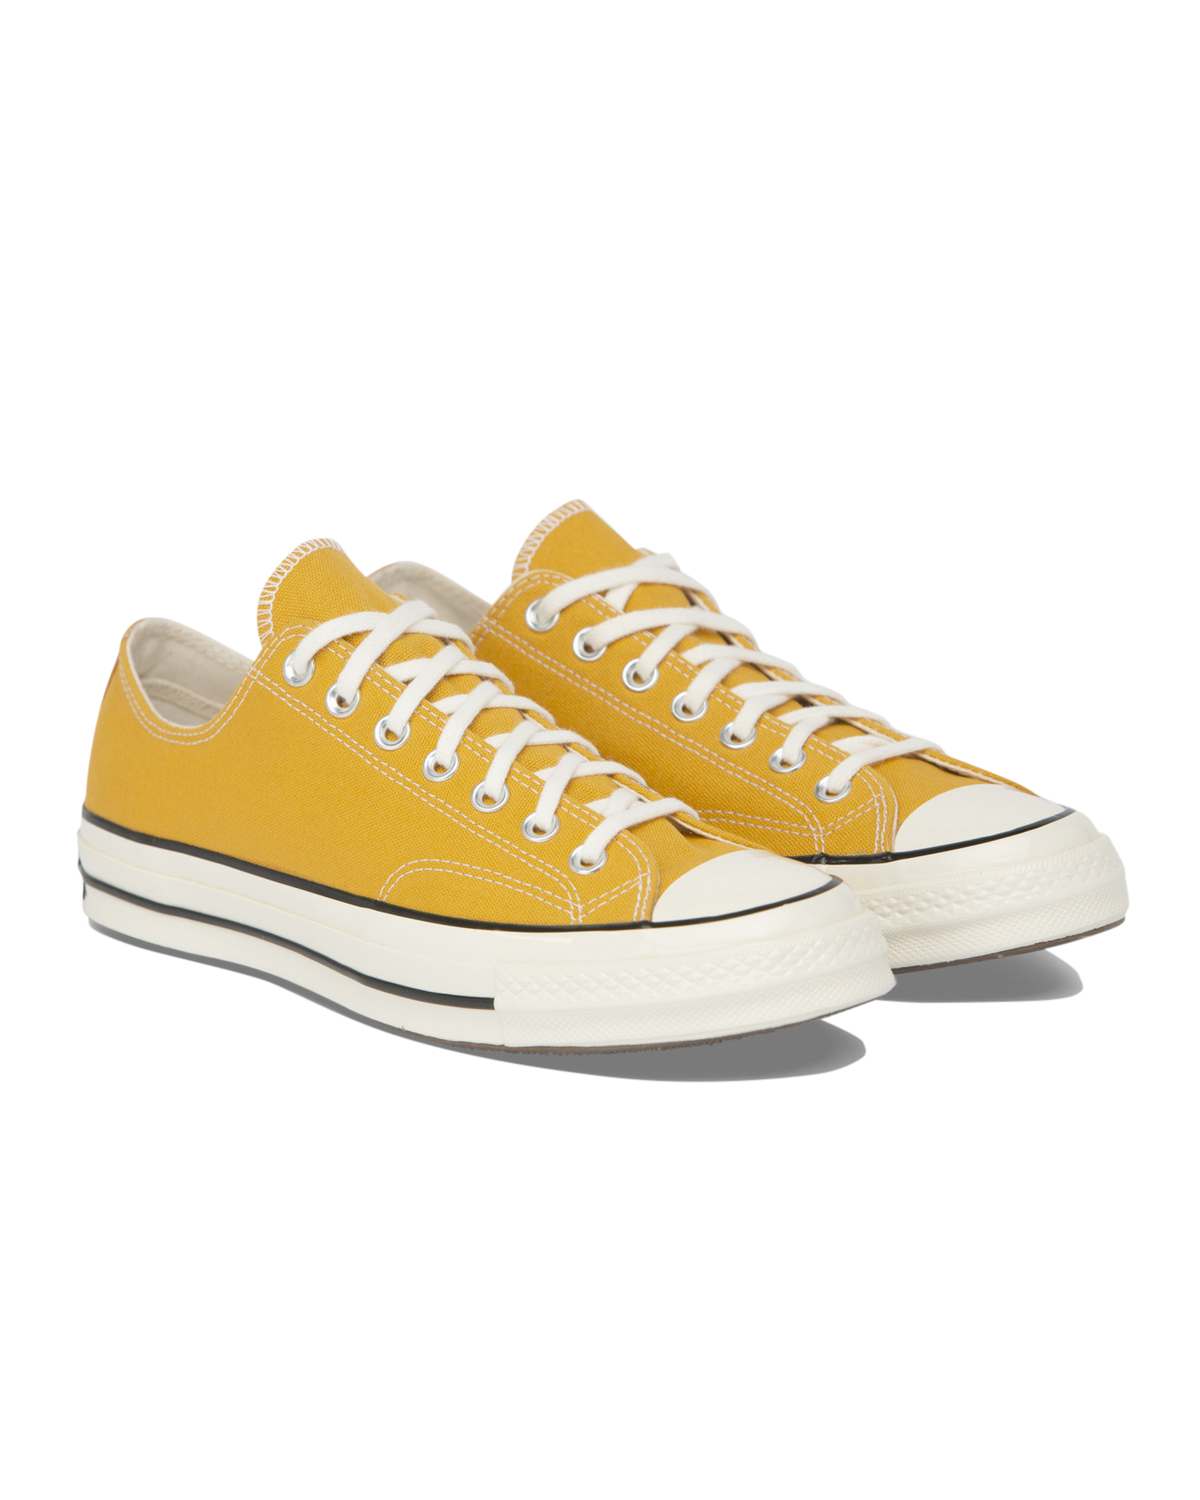 Chuck Taylor All Star 70 Canvas Low - Sunflower Yellow